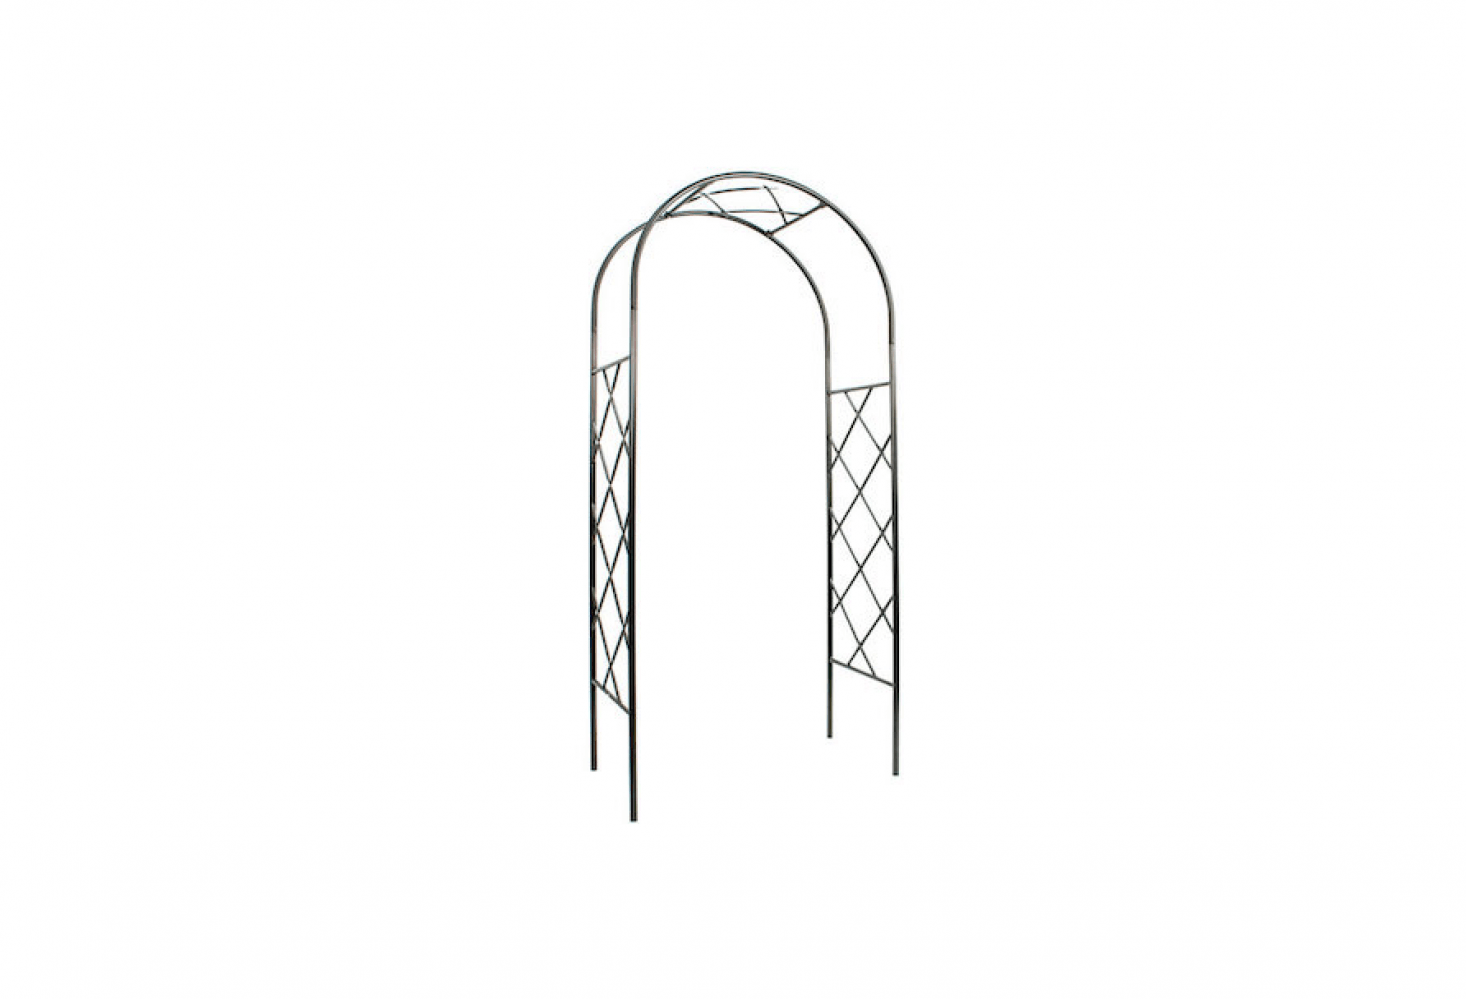 See similar fretwork metal arbors in10 Easy Pieces: Arched Arbors. Photograph via The Monticello Shop.